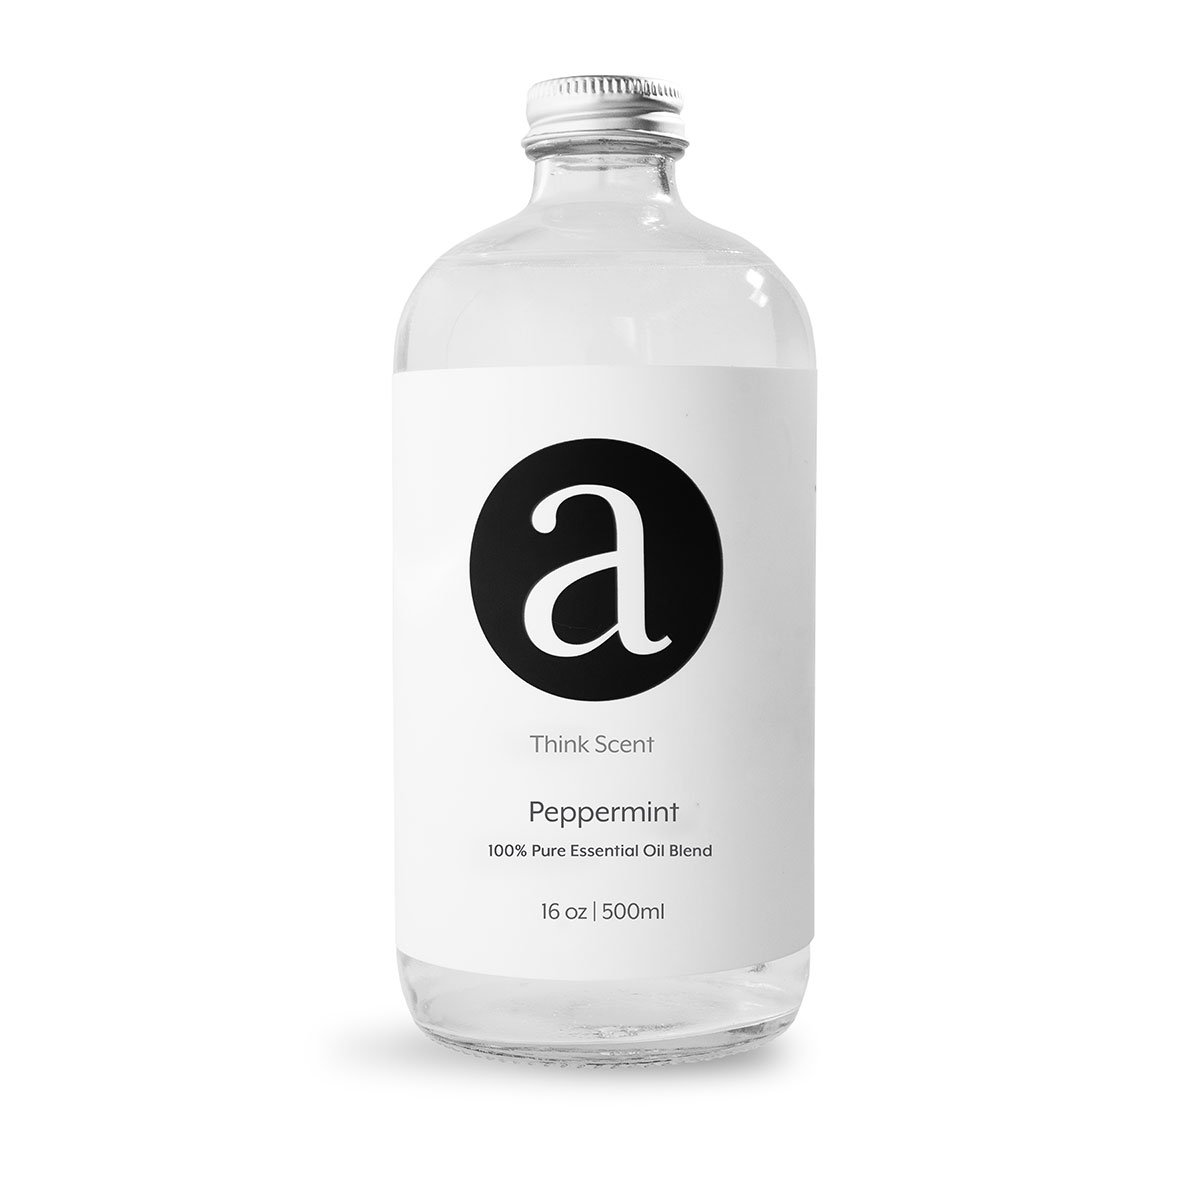 (Peppermint) Aroma / Fragrance Oil For AromaTech Air Freshener Scent Diffuser (500ml)